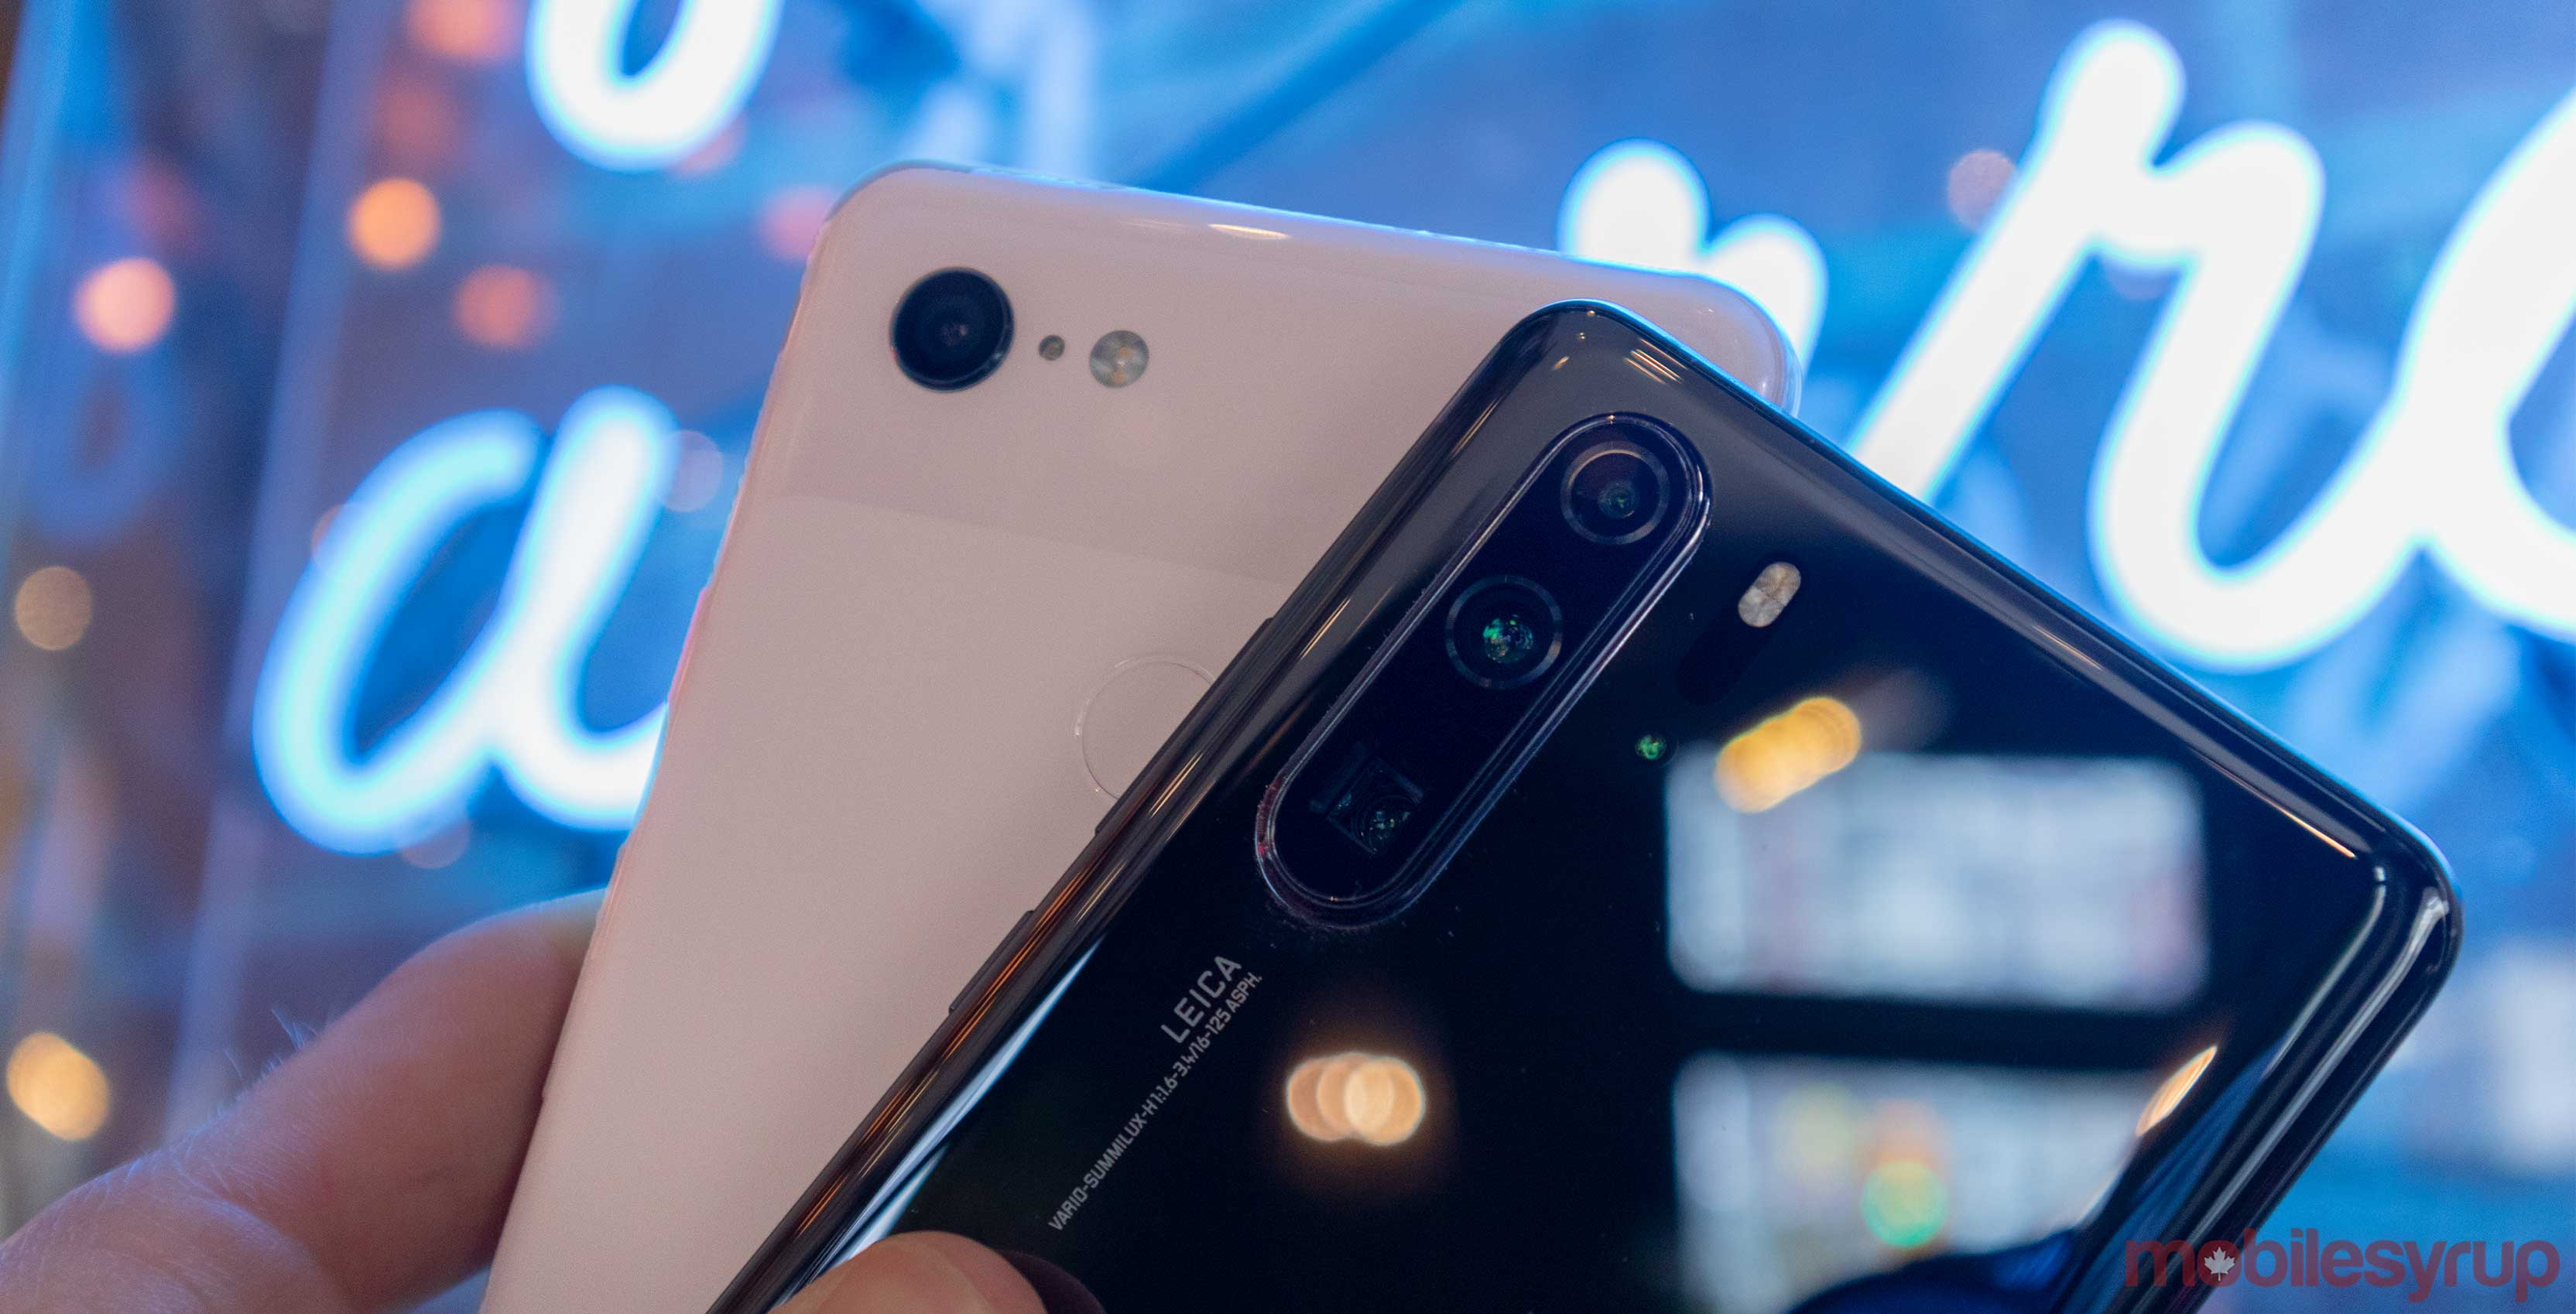 Here's how the Huawei P30 Pro camera stacks up against the